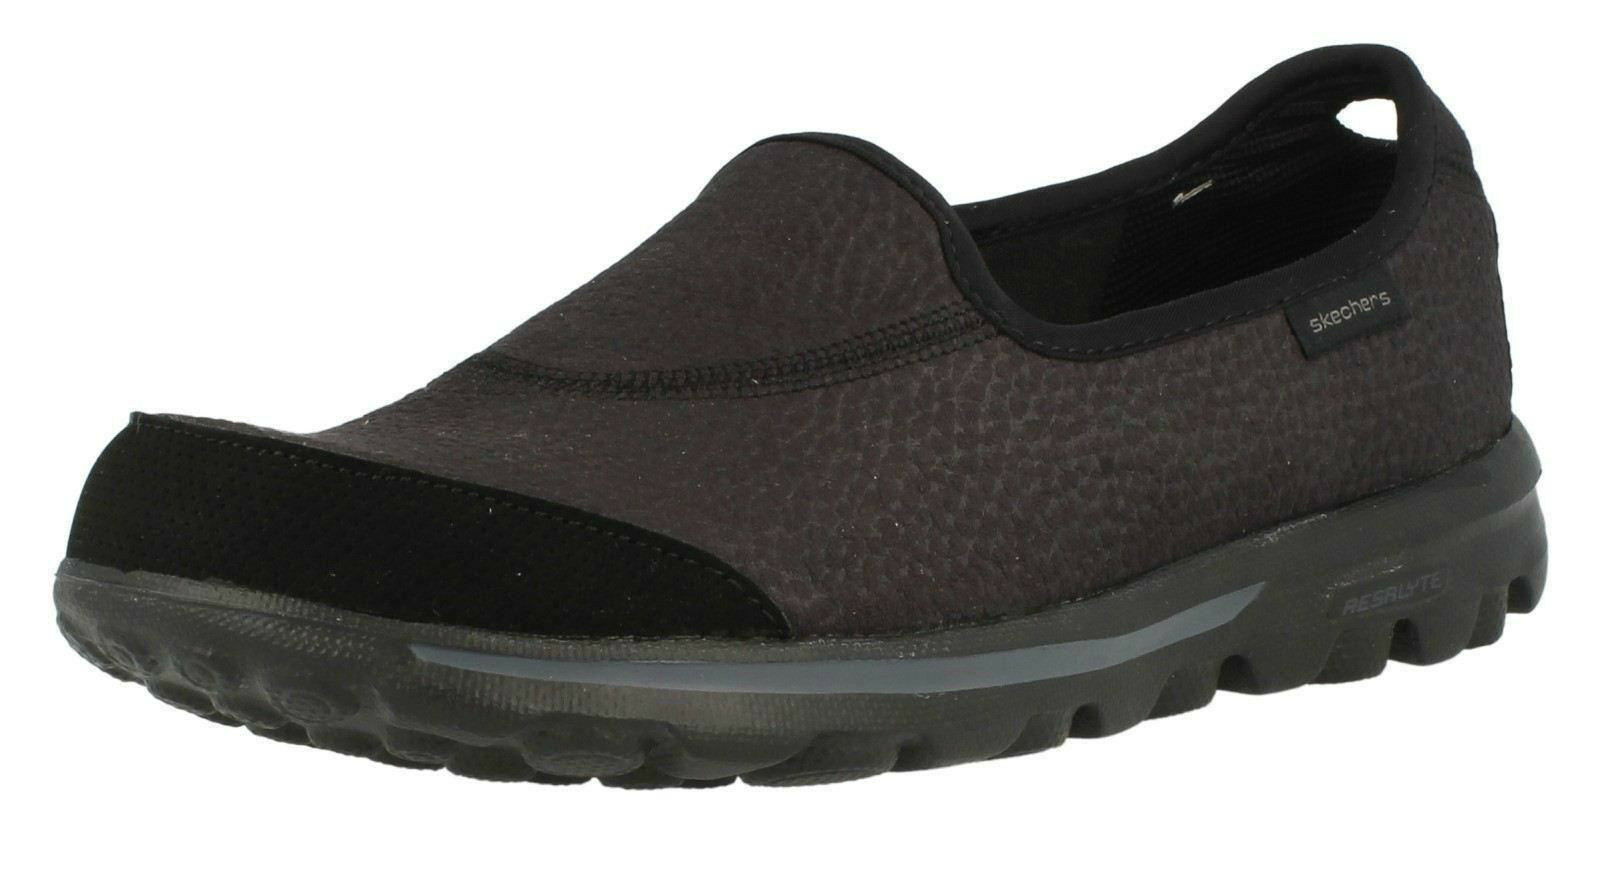 Damenschuhe Skechers Go Walk Ultimate Casual Slip On Passeggio Schuhe Casual Ultimate Ginnastica 13519 c8767e